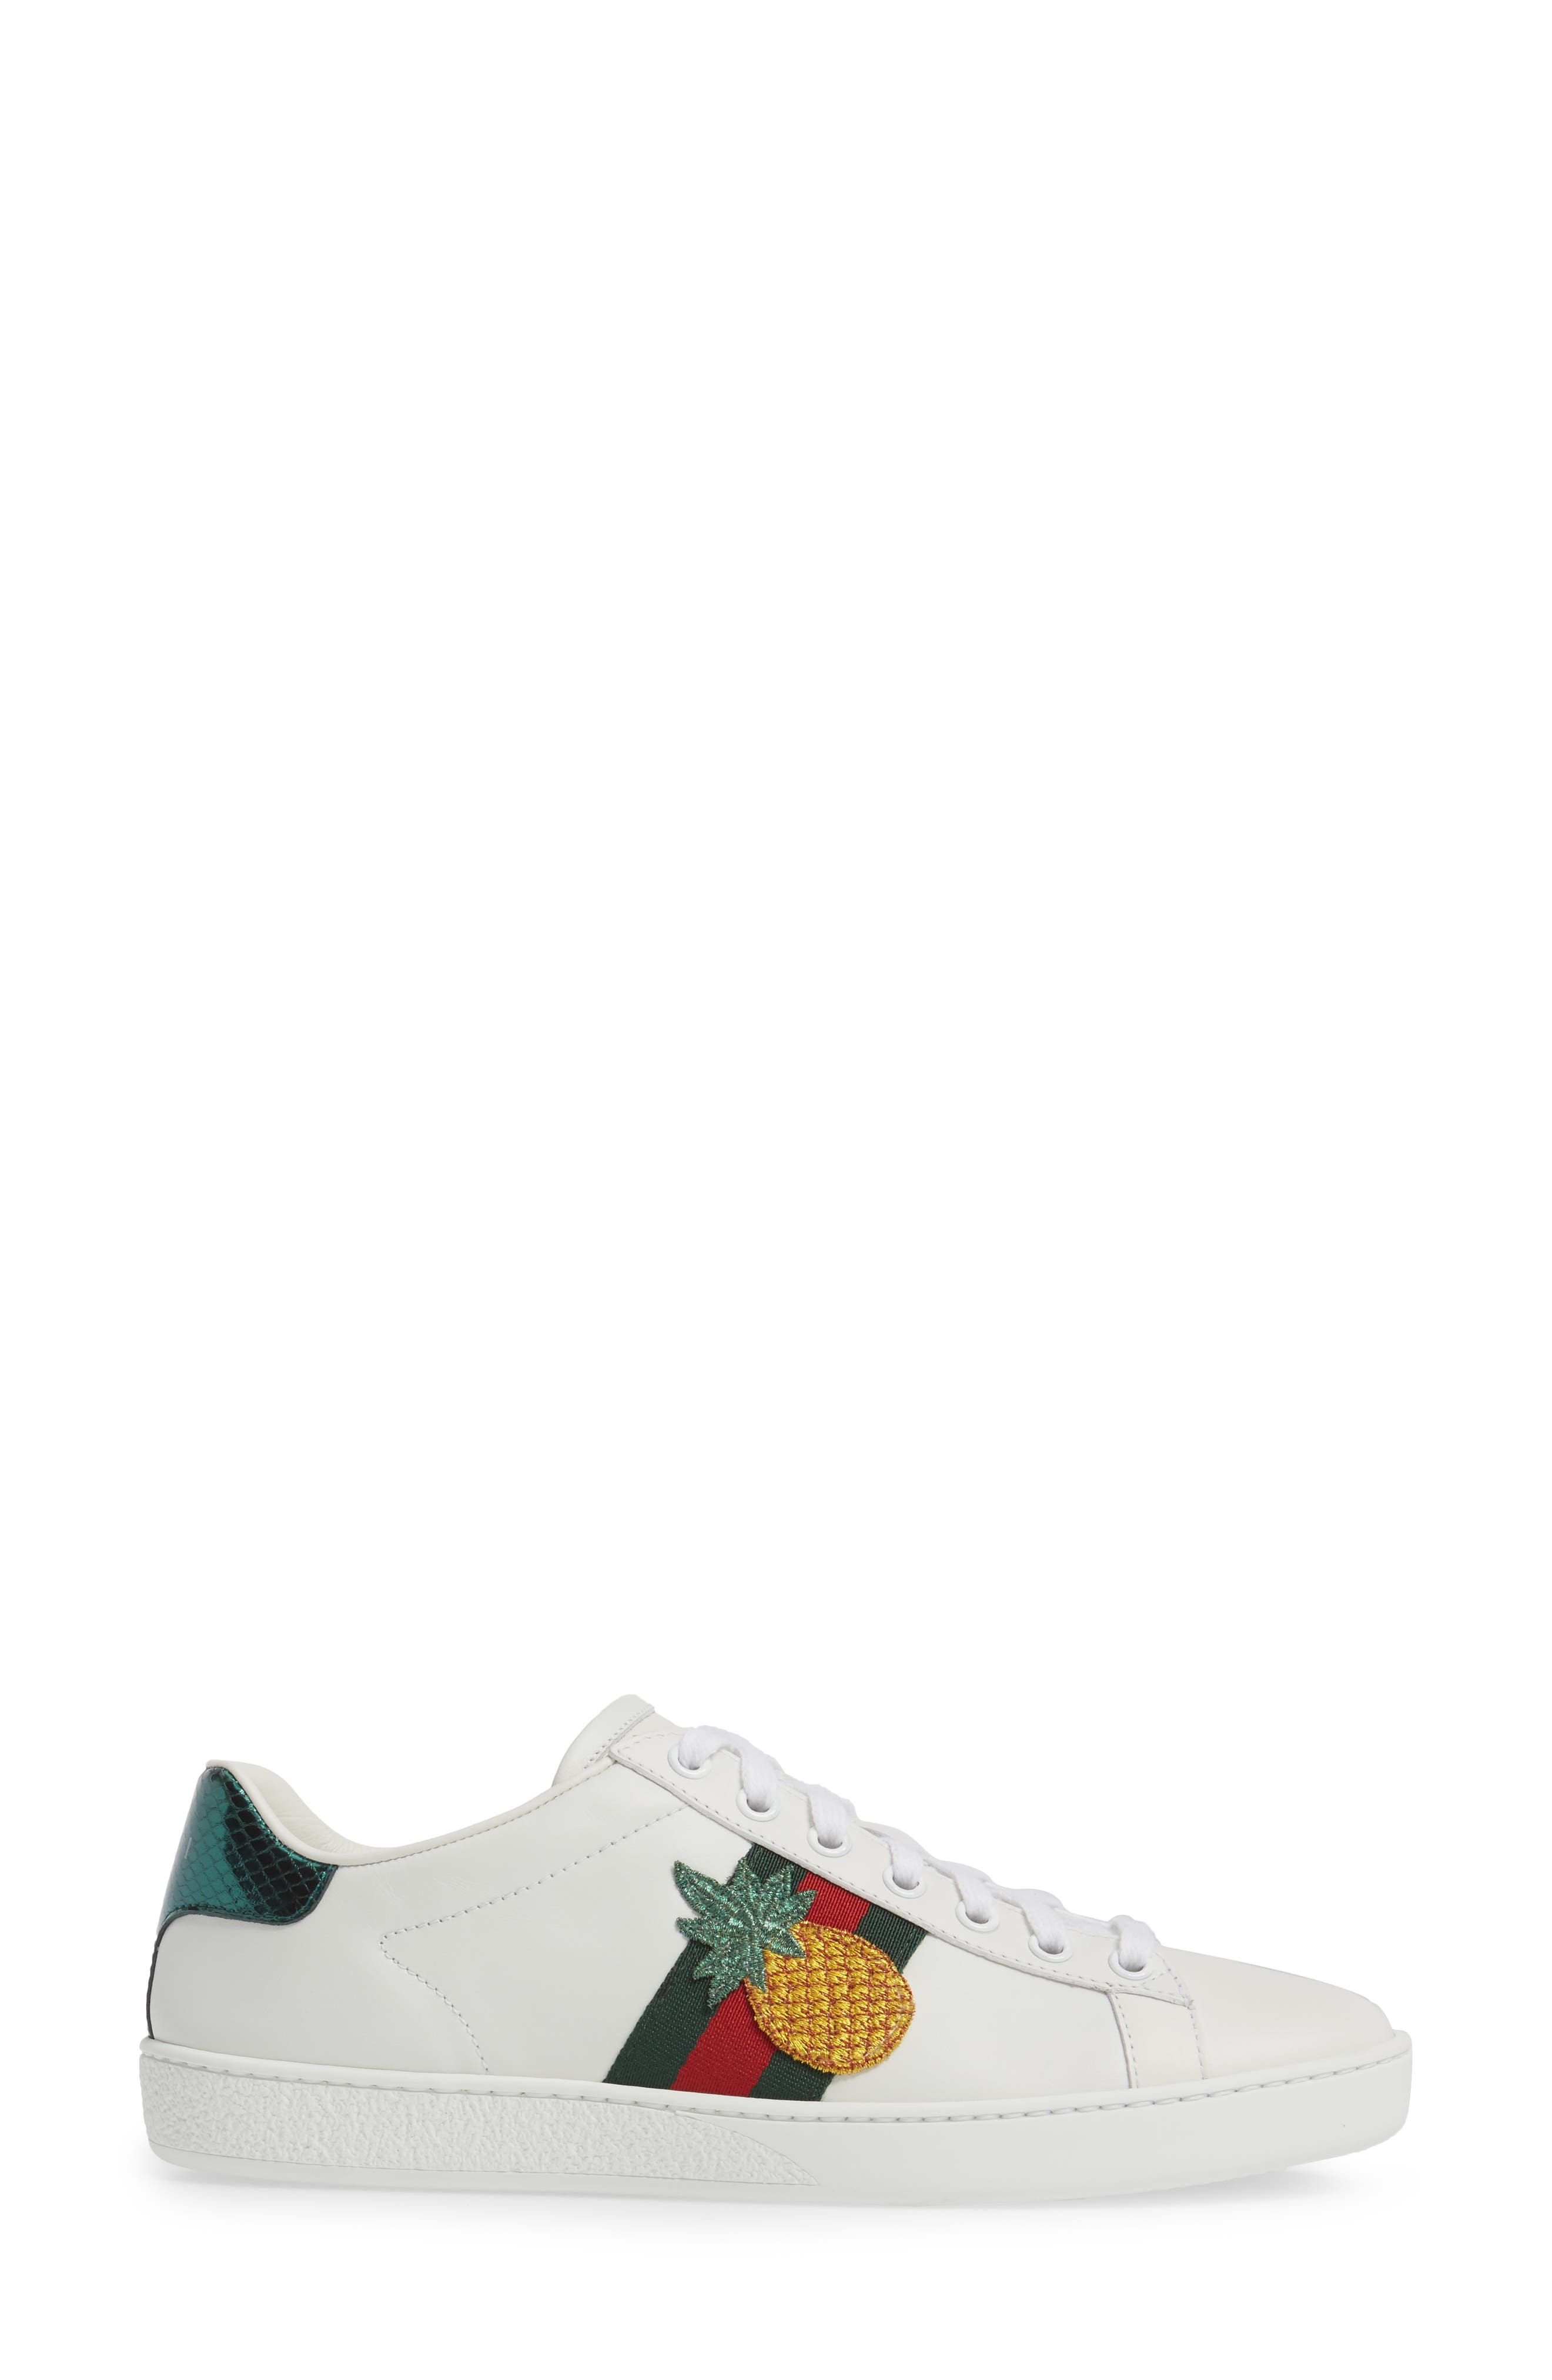 Alternate Image 3  - Gucci New Ace Pineapple Sneaker (Women)